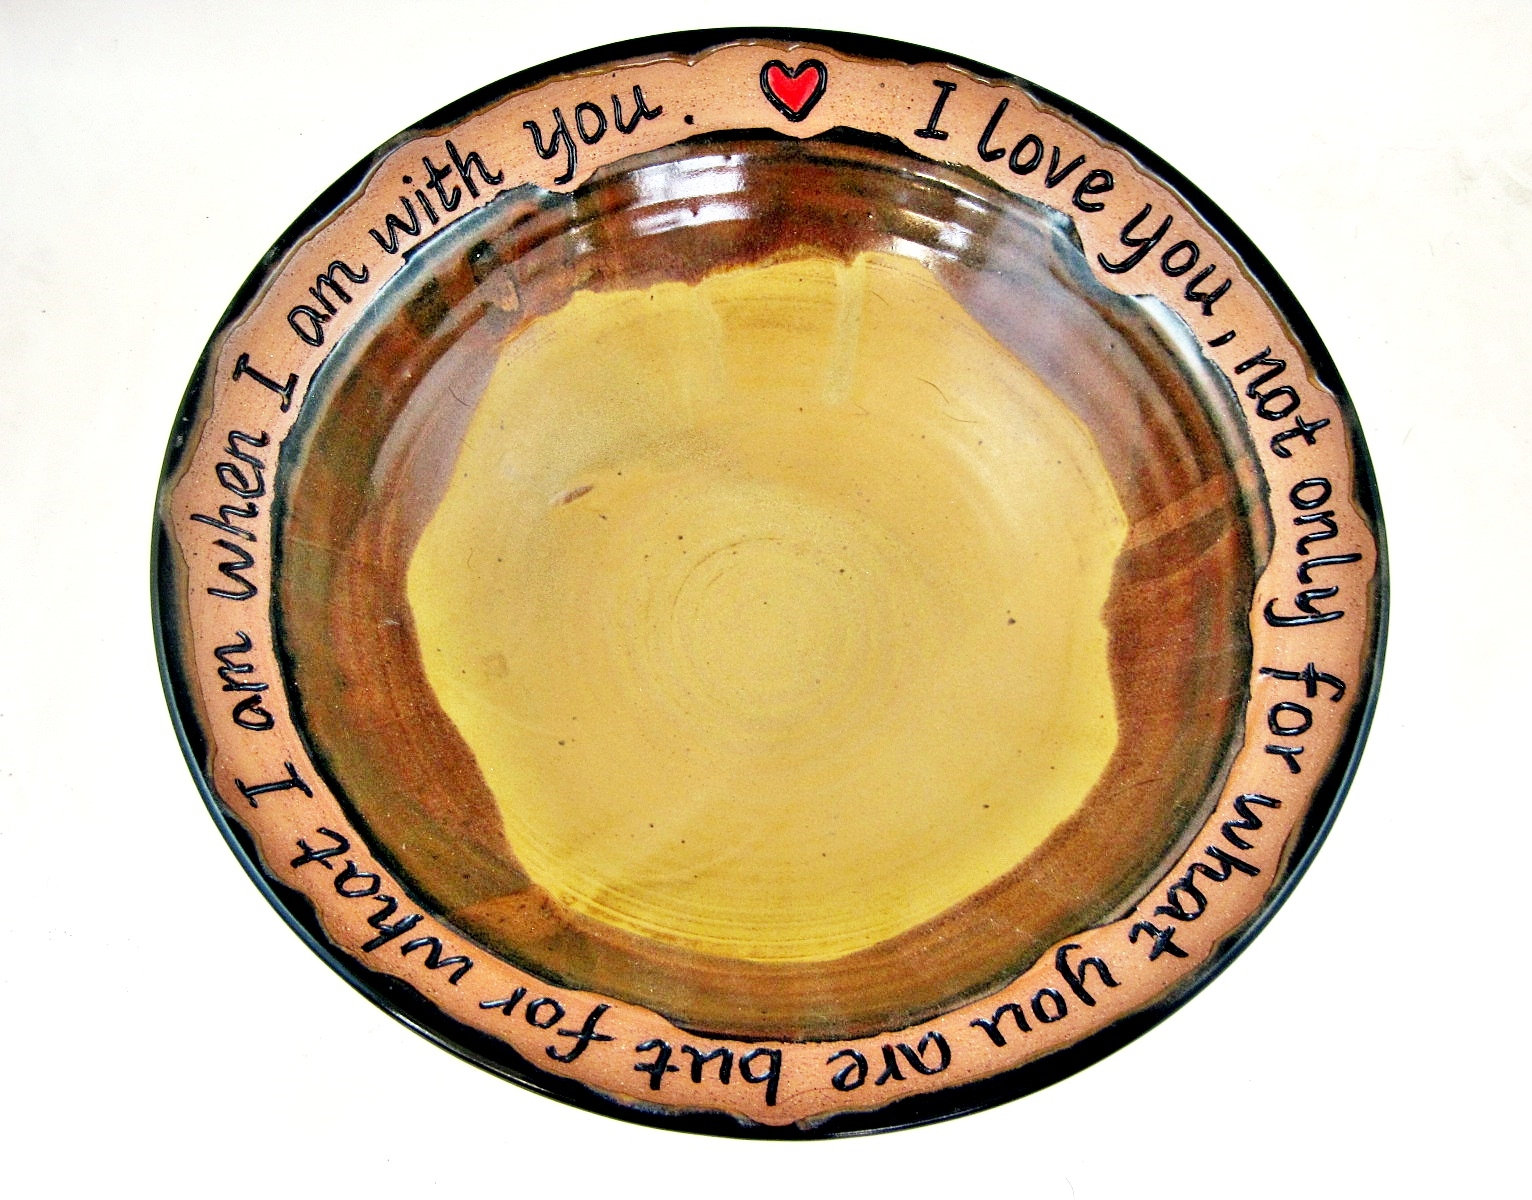 9th Anniversary Pottery For Wedding: Pottery Anniversary Gift 9th Wedding Anniversary Gift